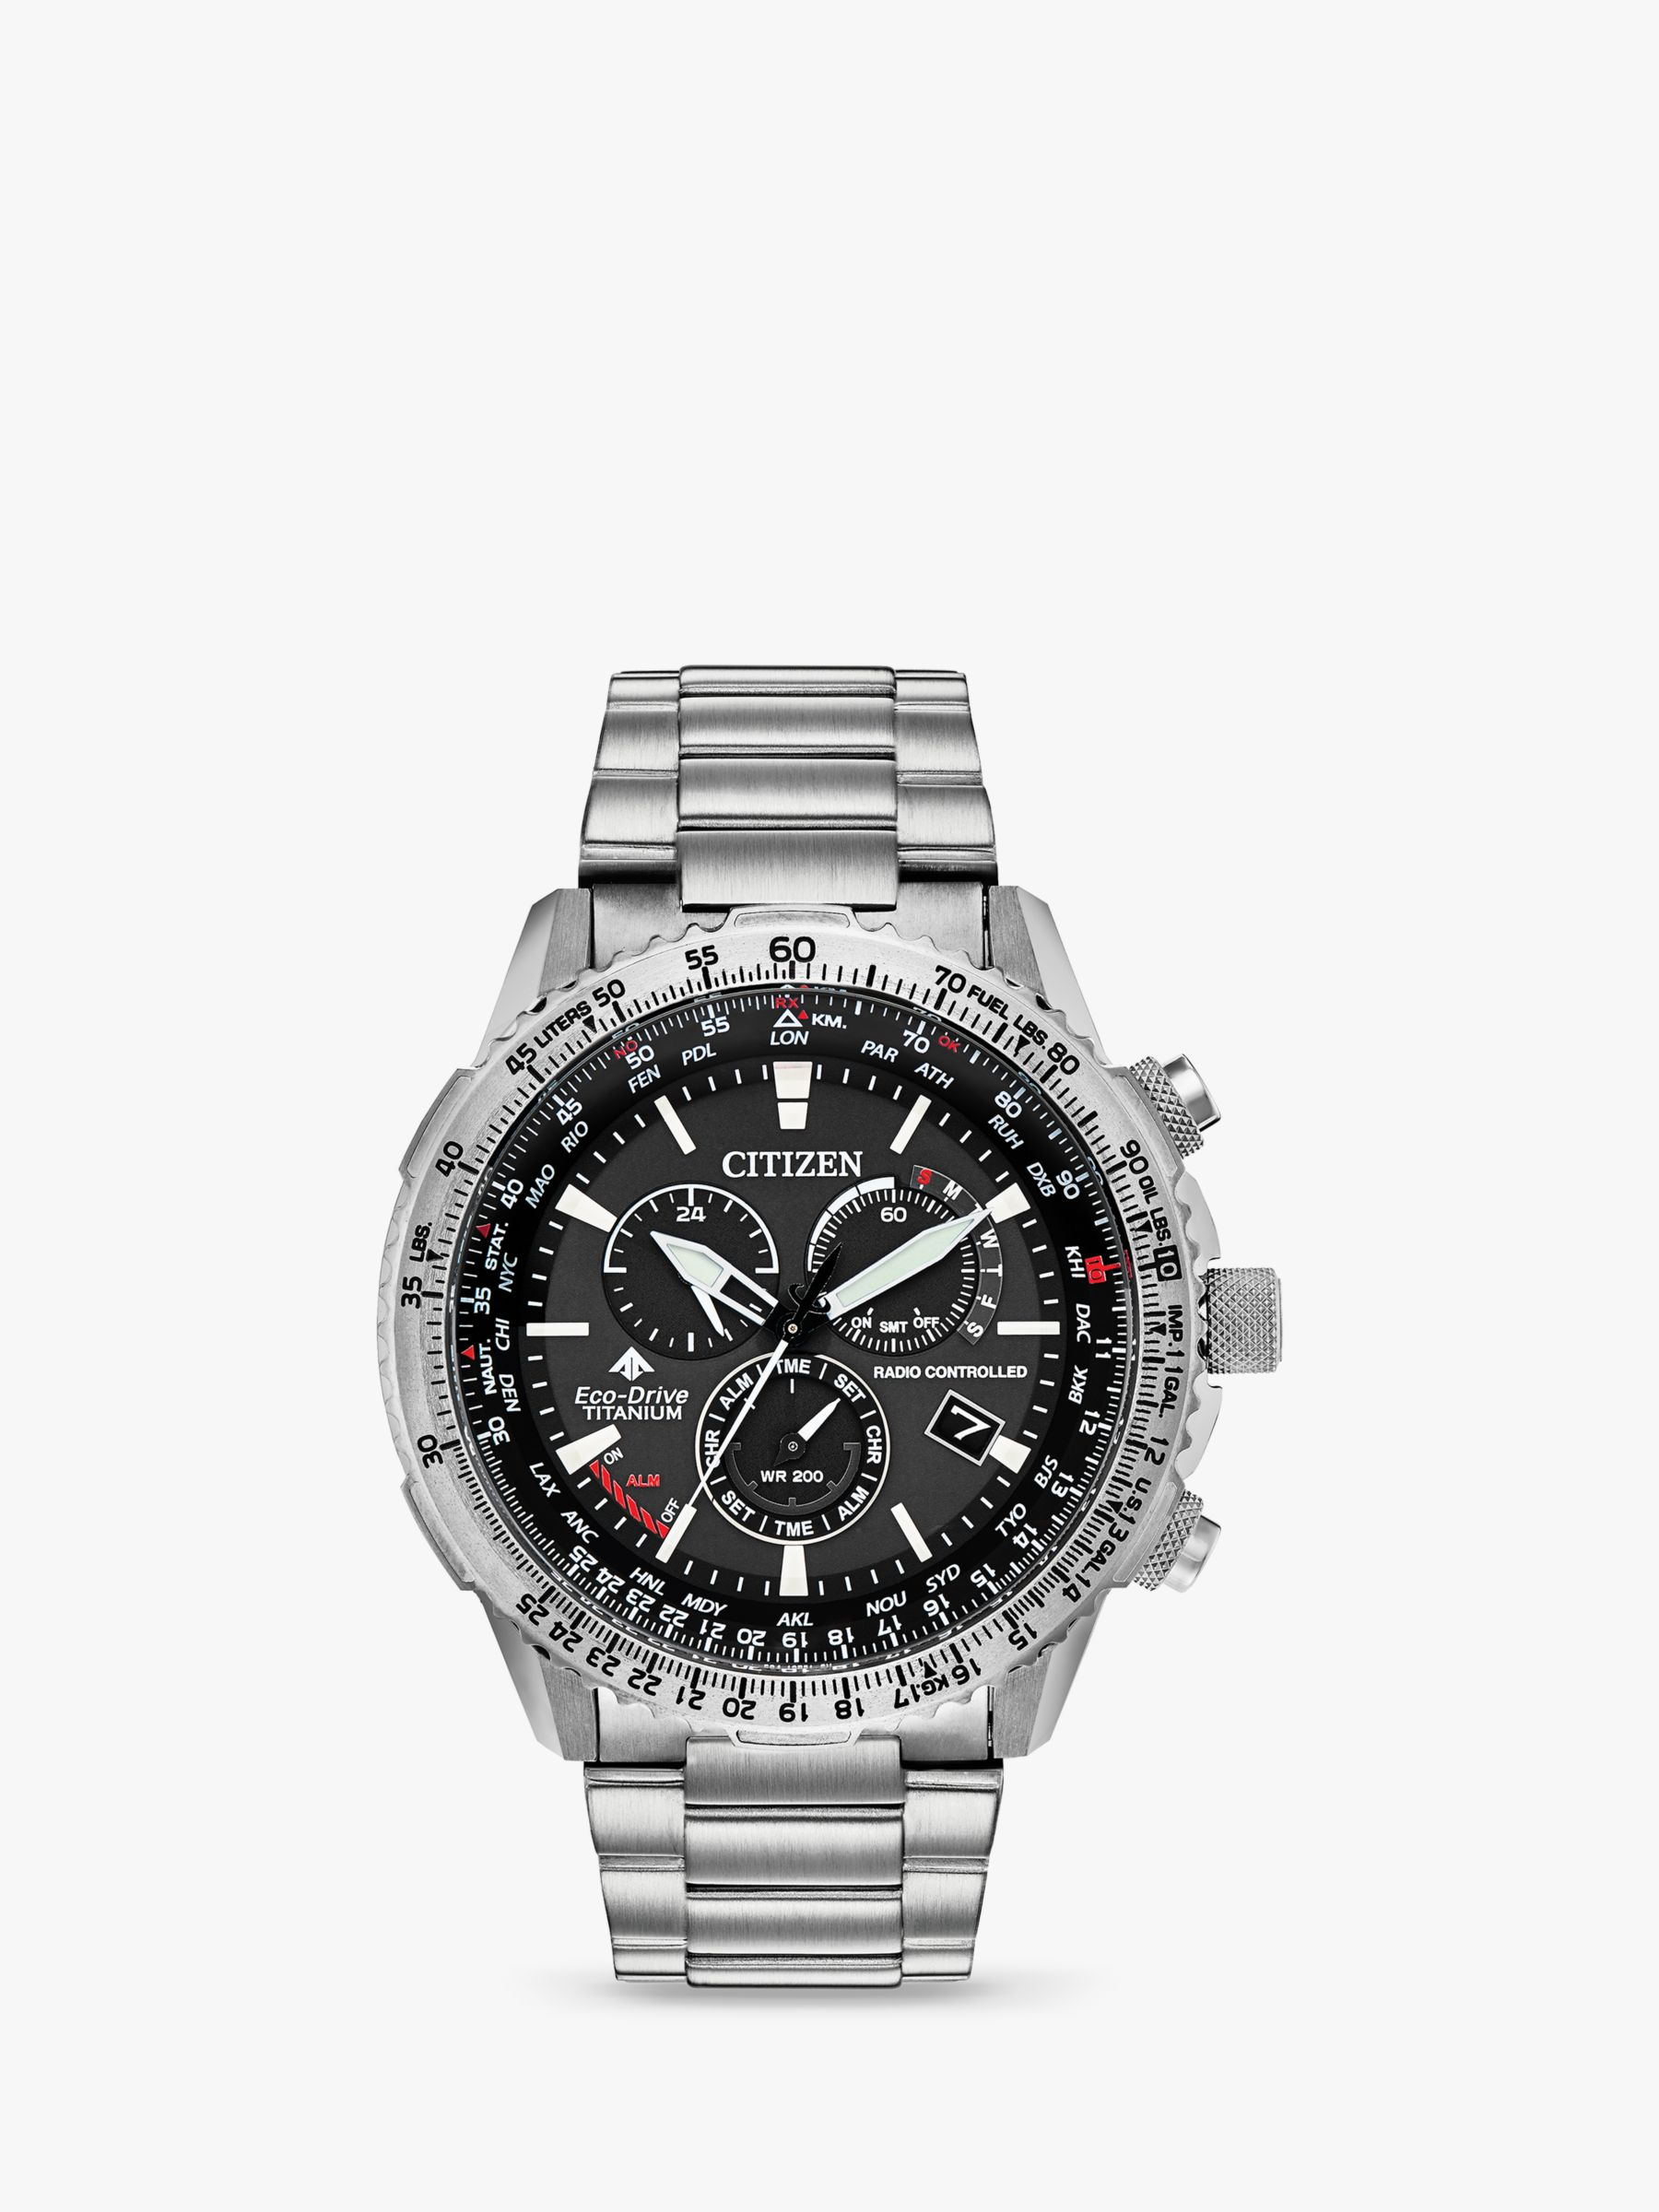 Citizen Citizen CB5010-81E Men's Promaster Chronograph Date Bracelet Strap Watch, Silver/Black